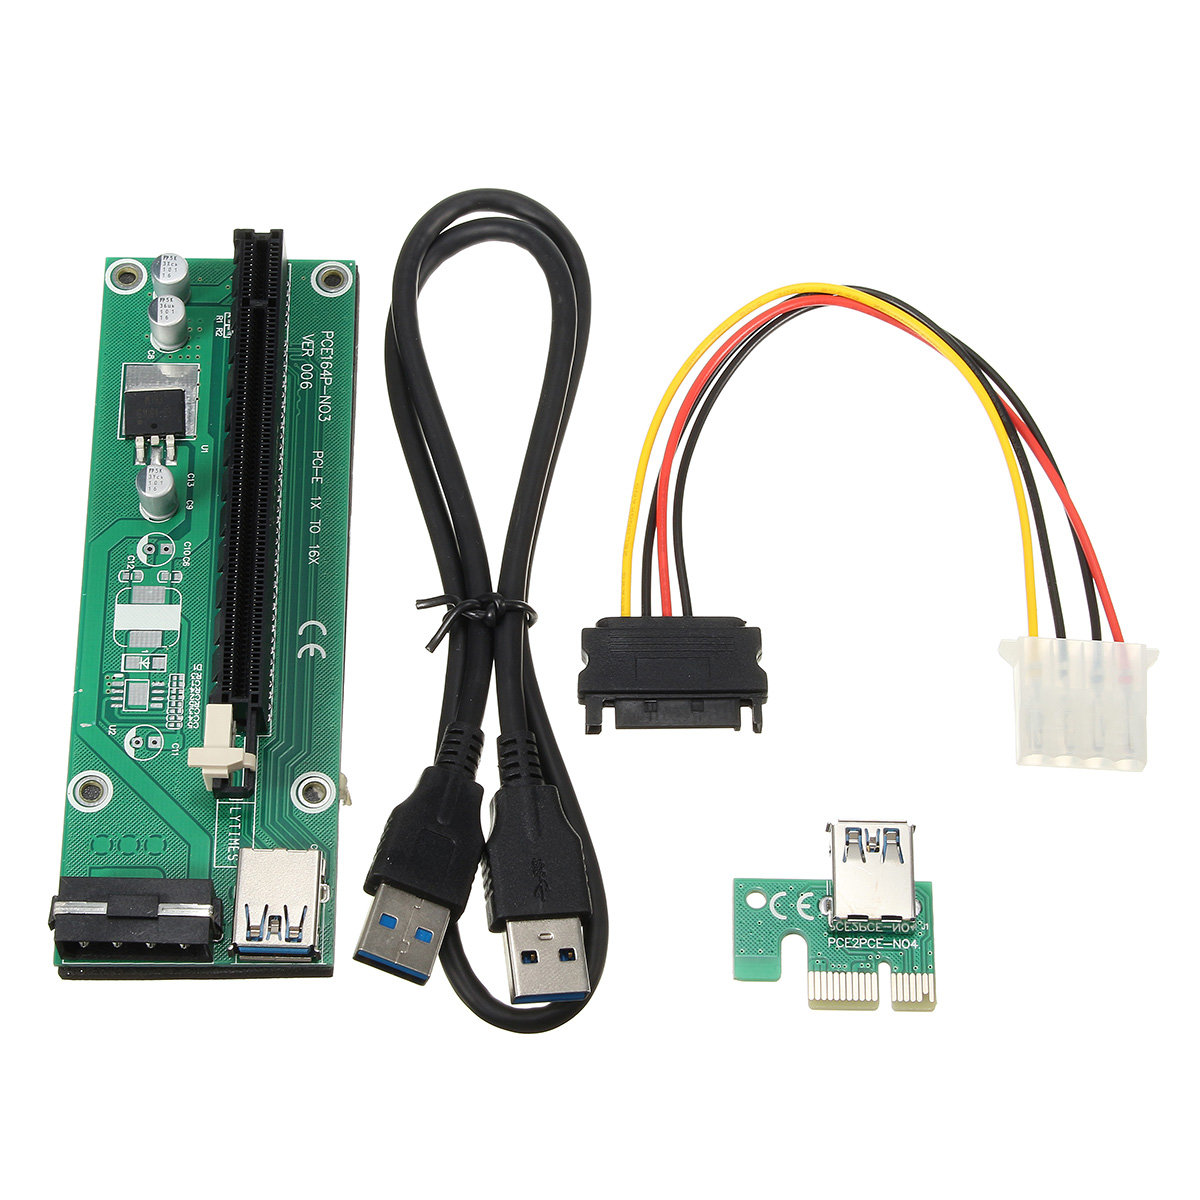 0.6m USB 3.0 PCI-E Express 1x to16x Extension Cable Extender Riser Board Card Adapter SATA Cable